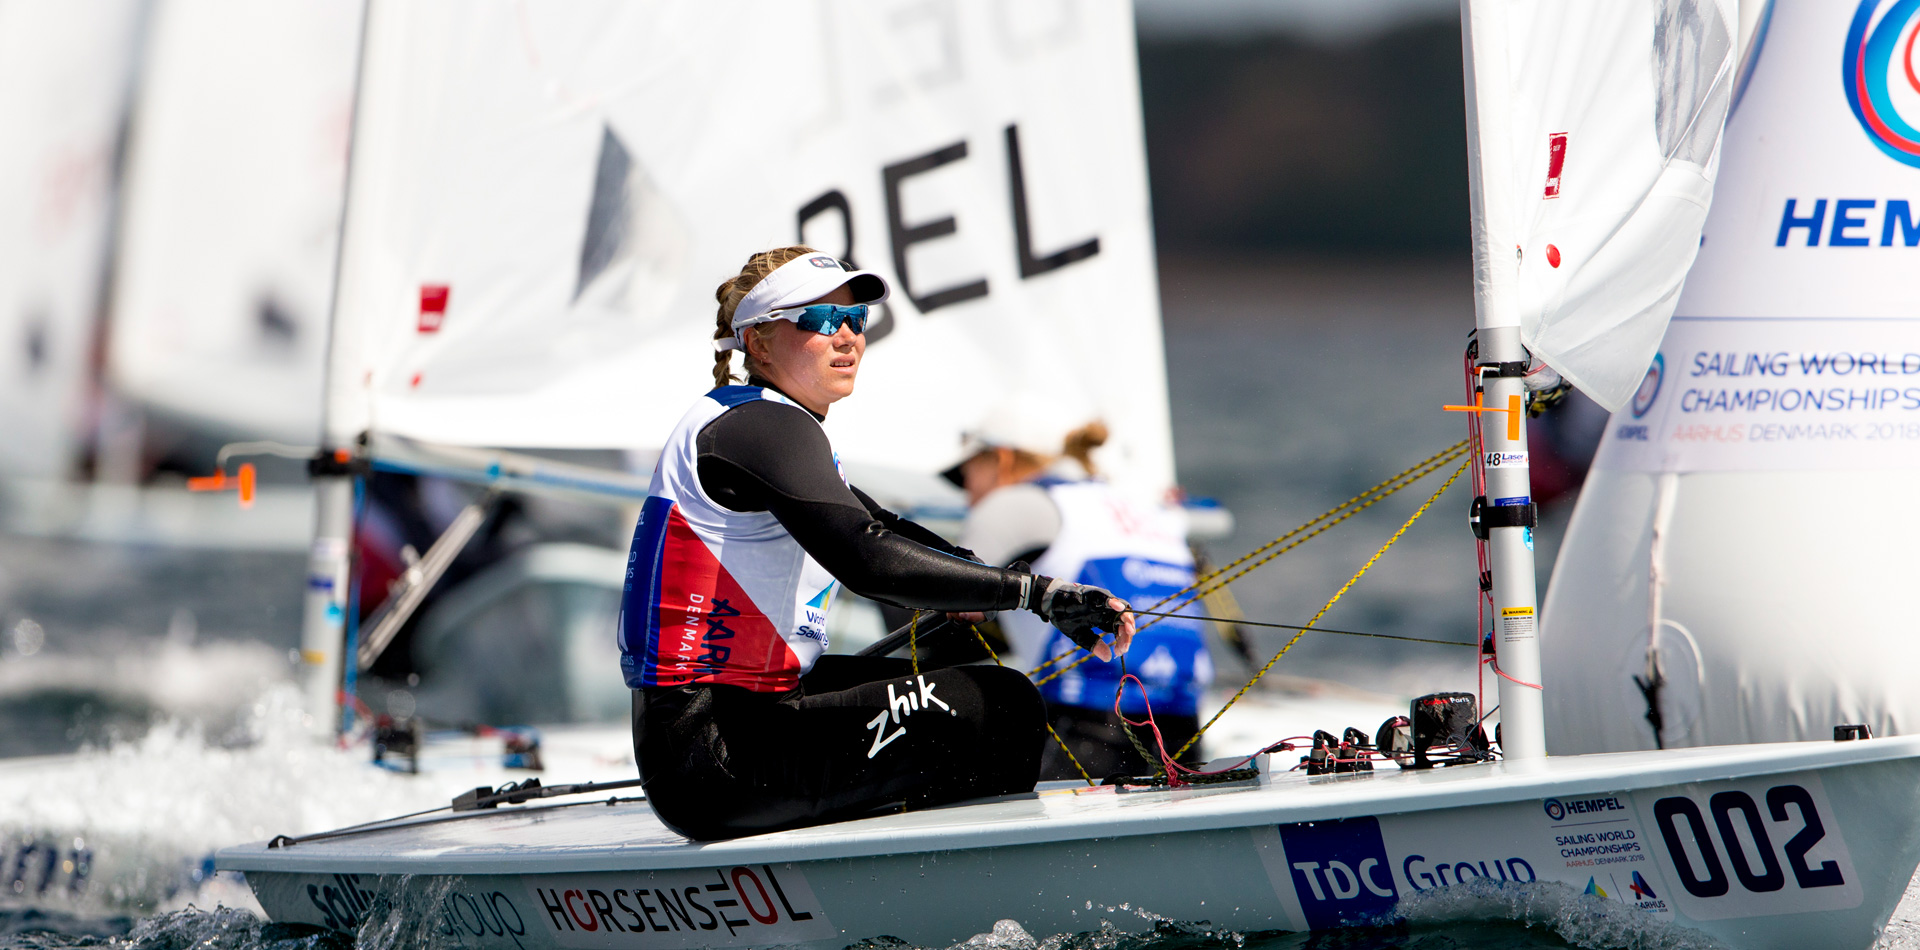 2018 Laser World championship results